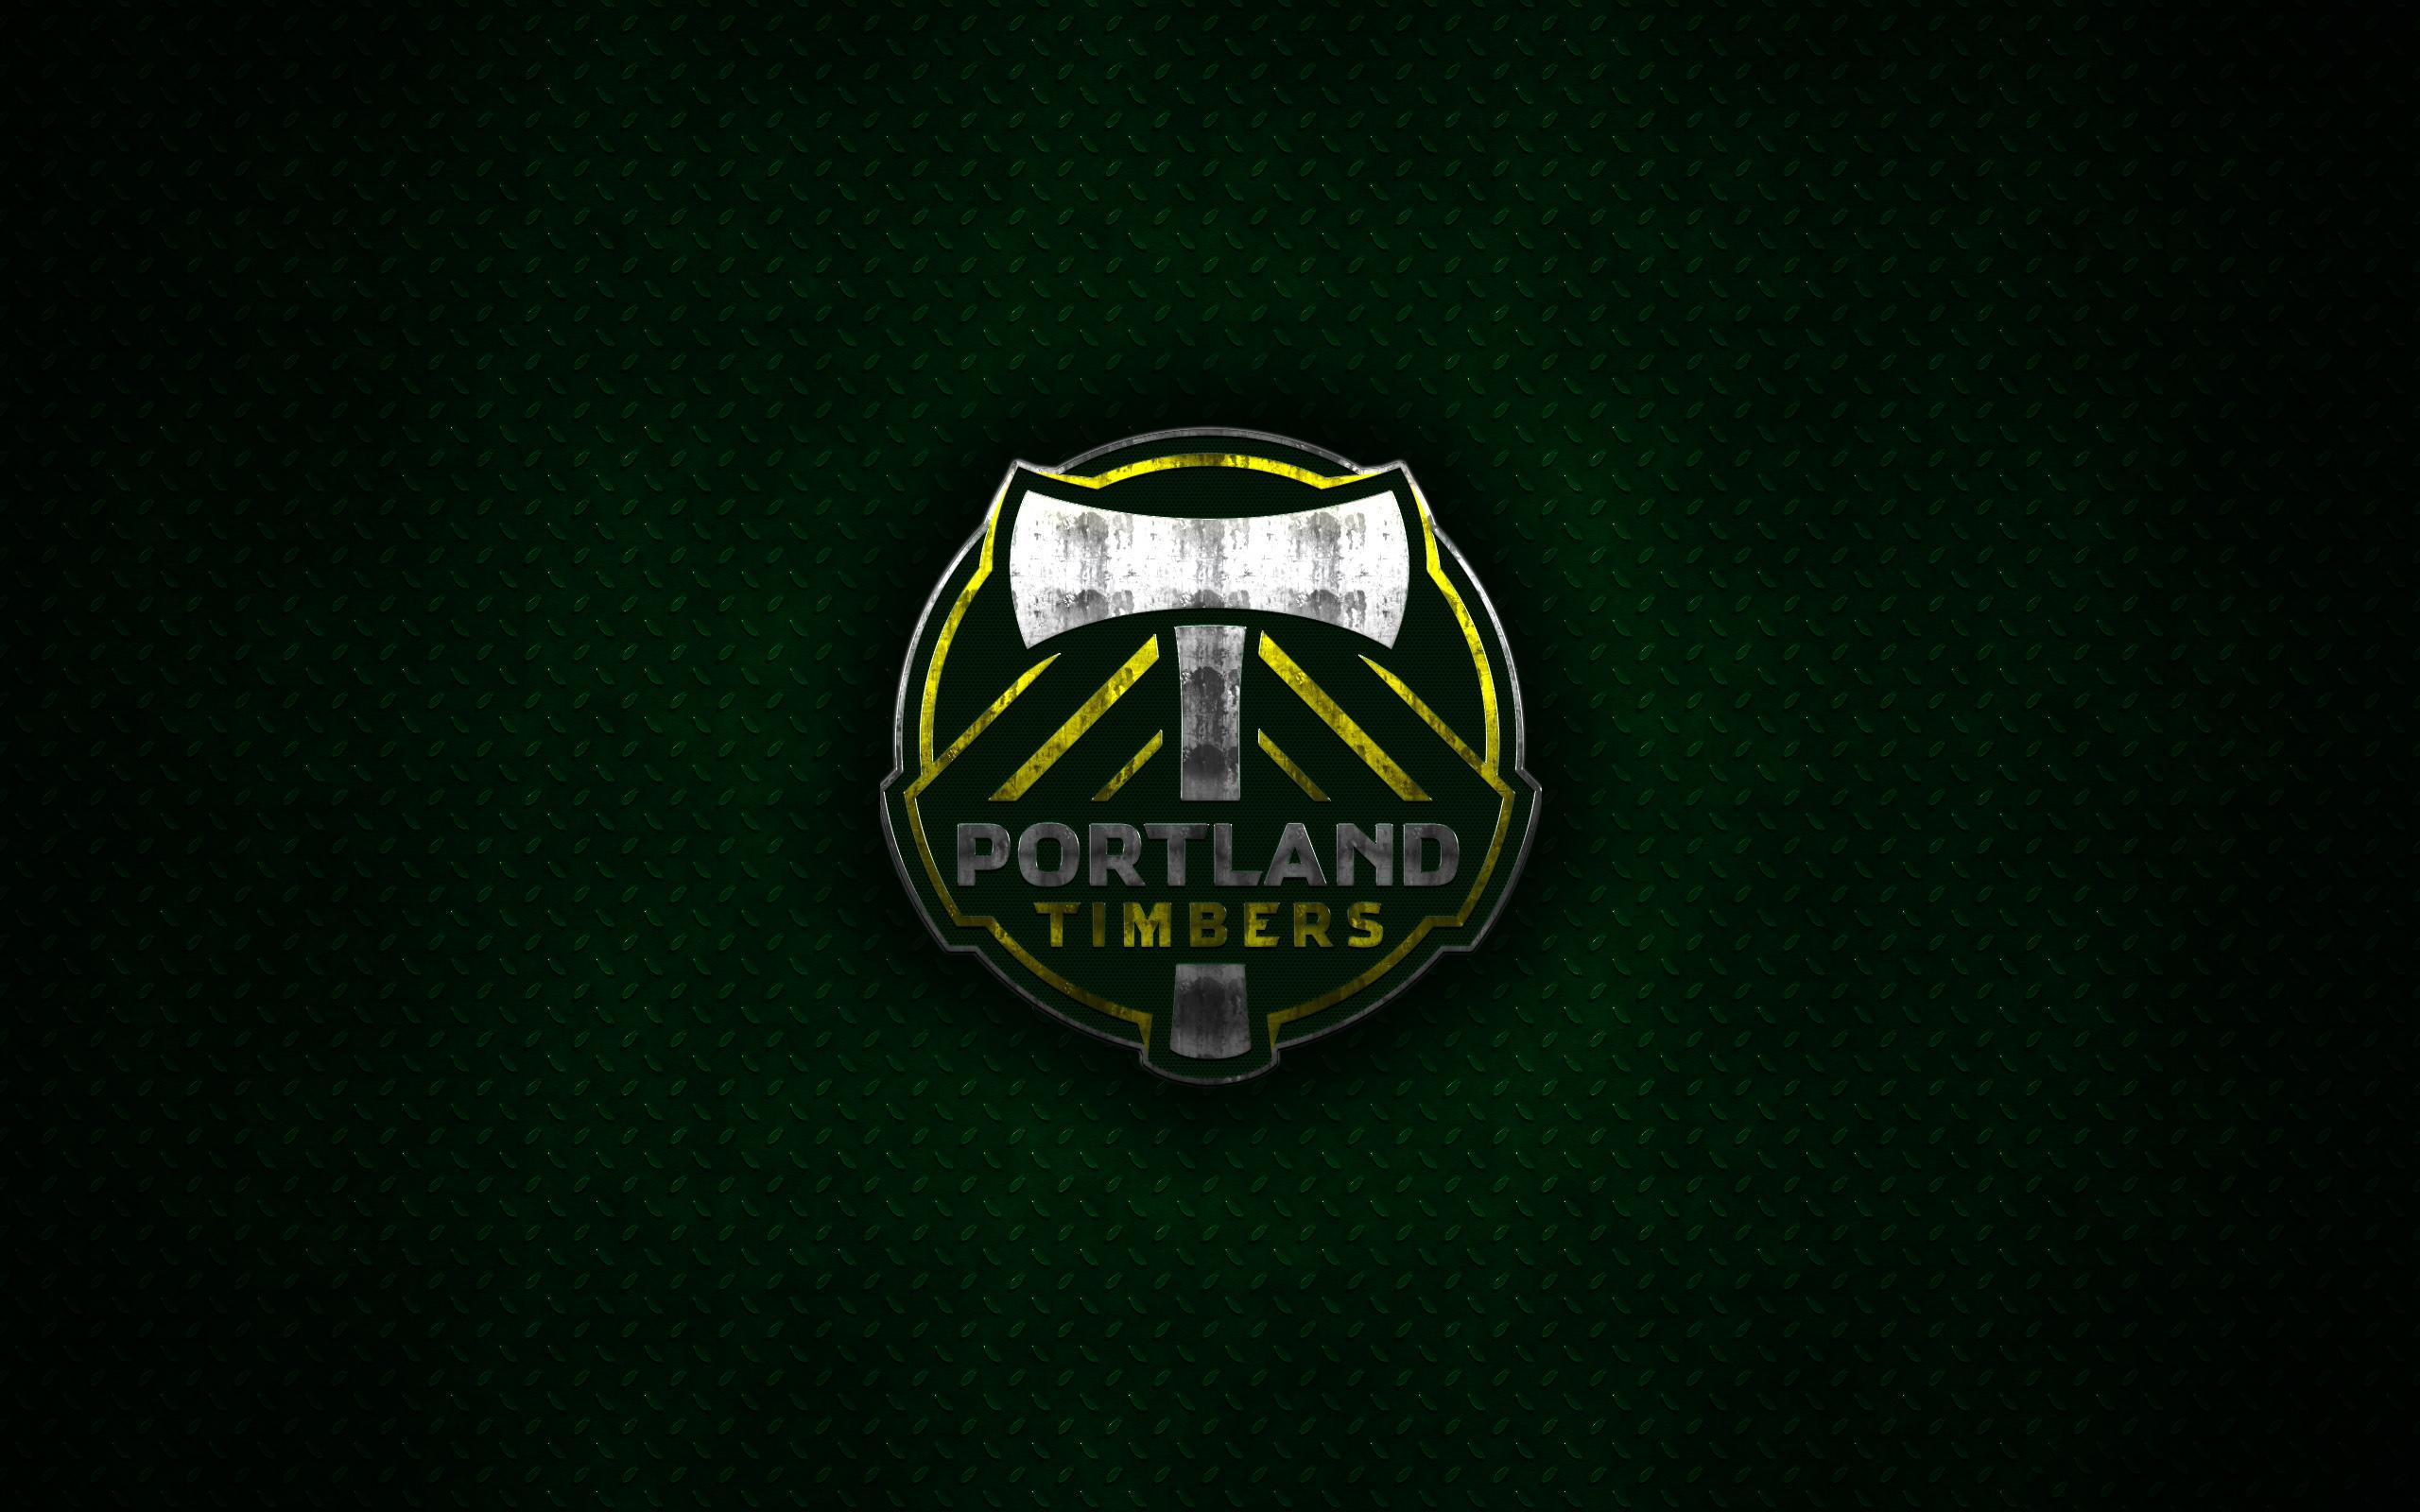 MLS, Logo, Soccer, Portland Timbers, Emblem wallpapers and backgrounds